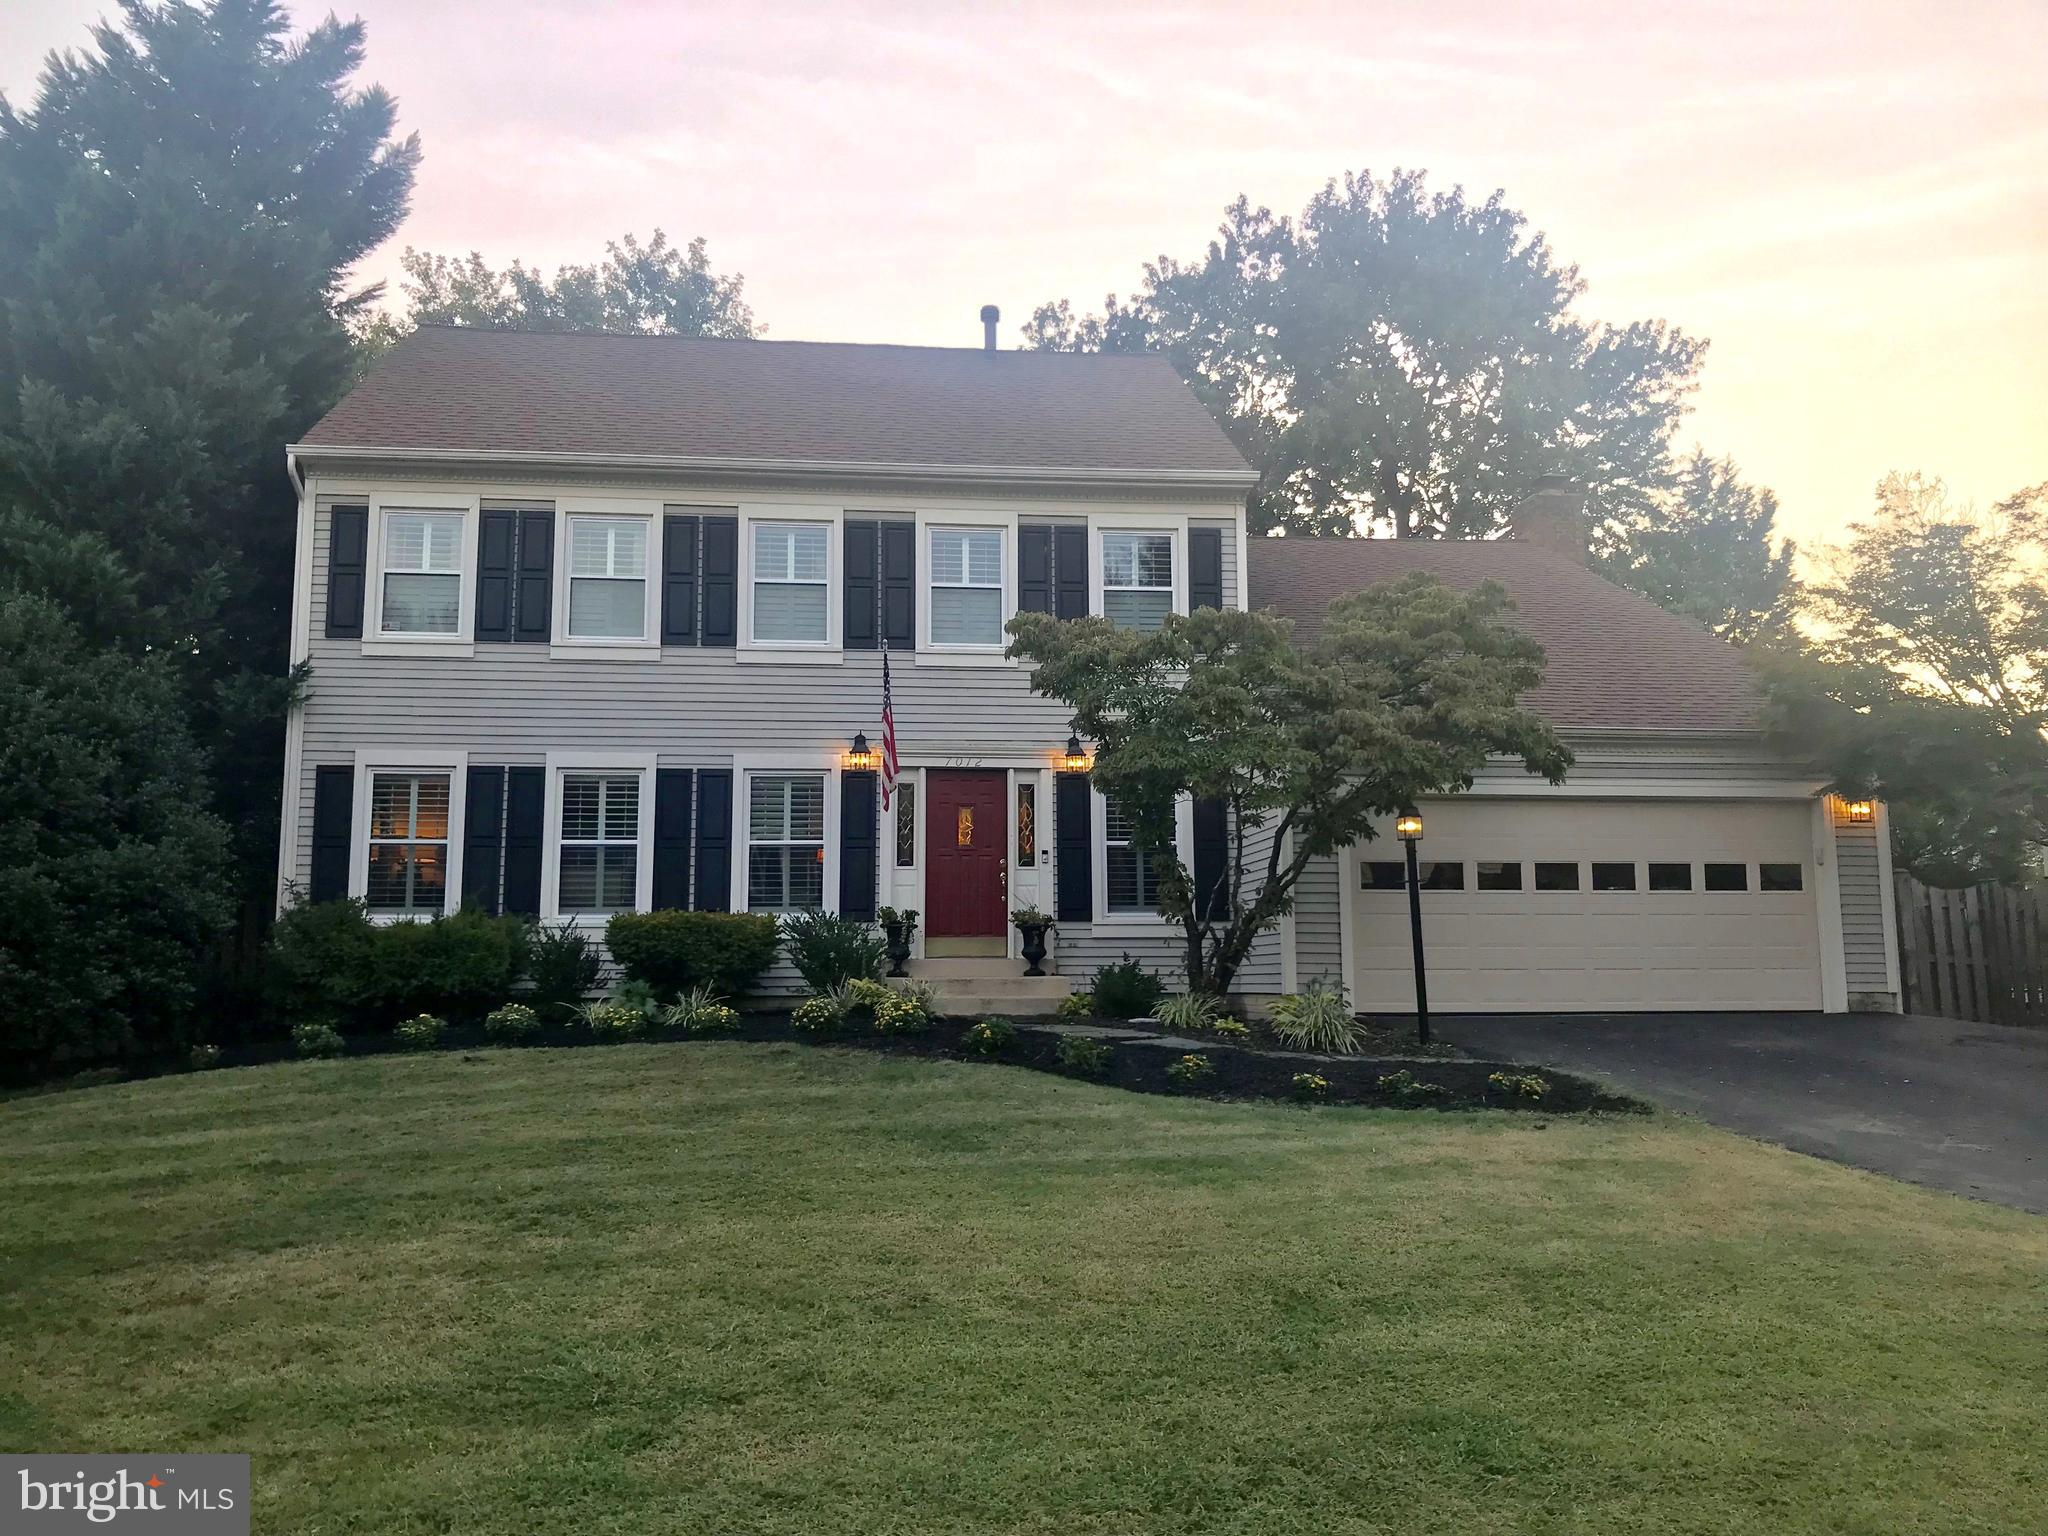 STUNNING Colonial minutes from Old Town Alexandria & Ft. Belvoir, 9 miles from DC, on a cul-de-sac street in Lake D'Evereux subdivision. Kit w/ SS appliances & granite counters. Breakfast area w/ bay window. Seperate Formal Din Rm. Family Rm w/Cozy Fireplace & Walkout to Sunroom and large deck with private tree lined- backyard. Huge MBR w/ cathedral ceilings, updated MB with Jacuzzi/sep shower.